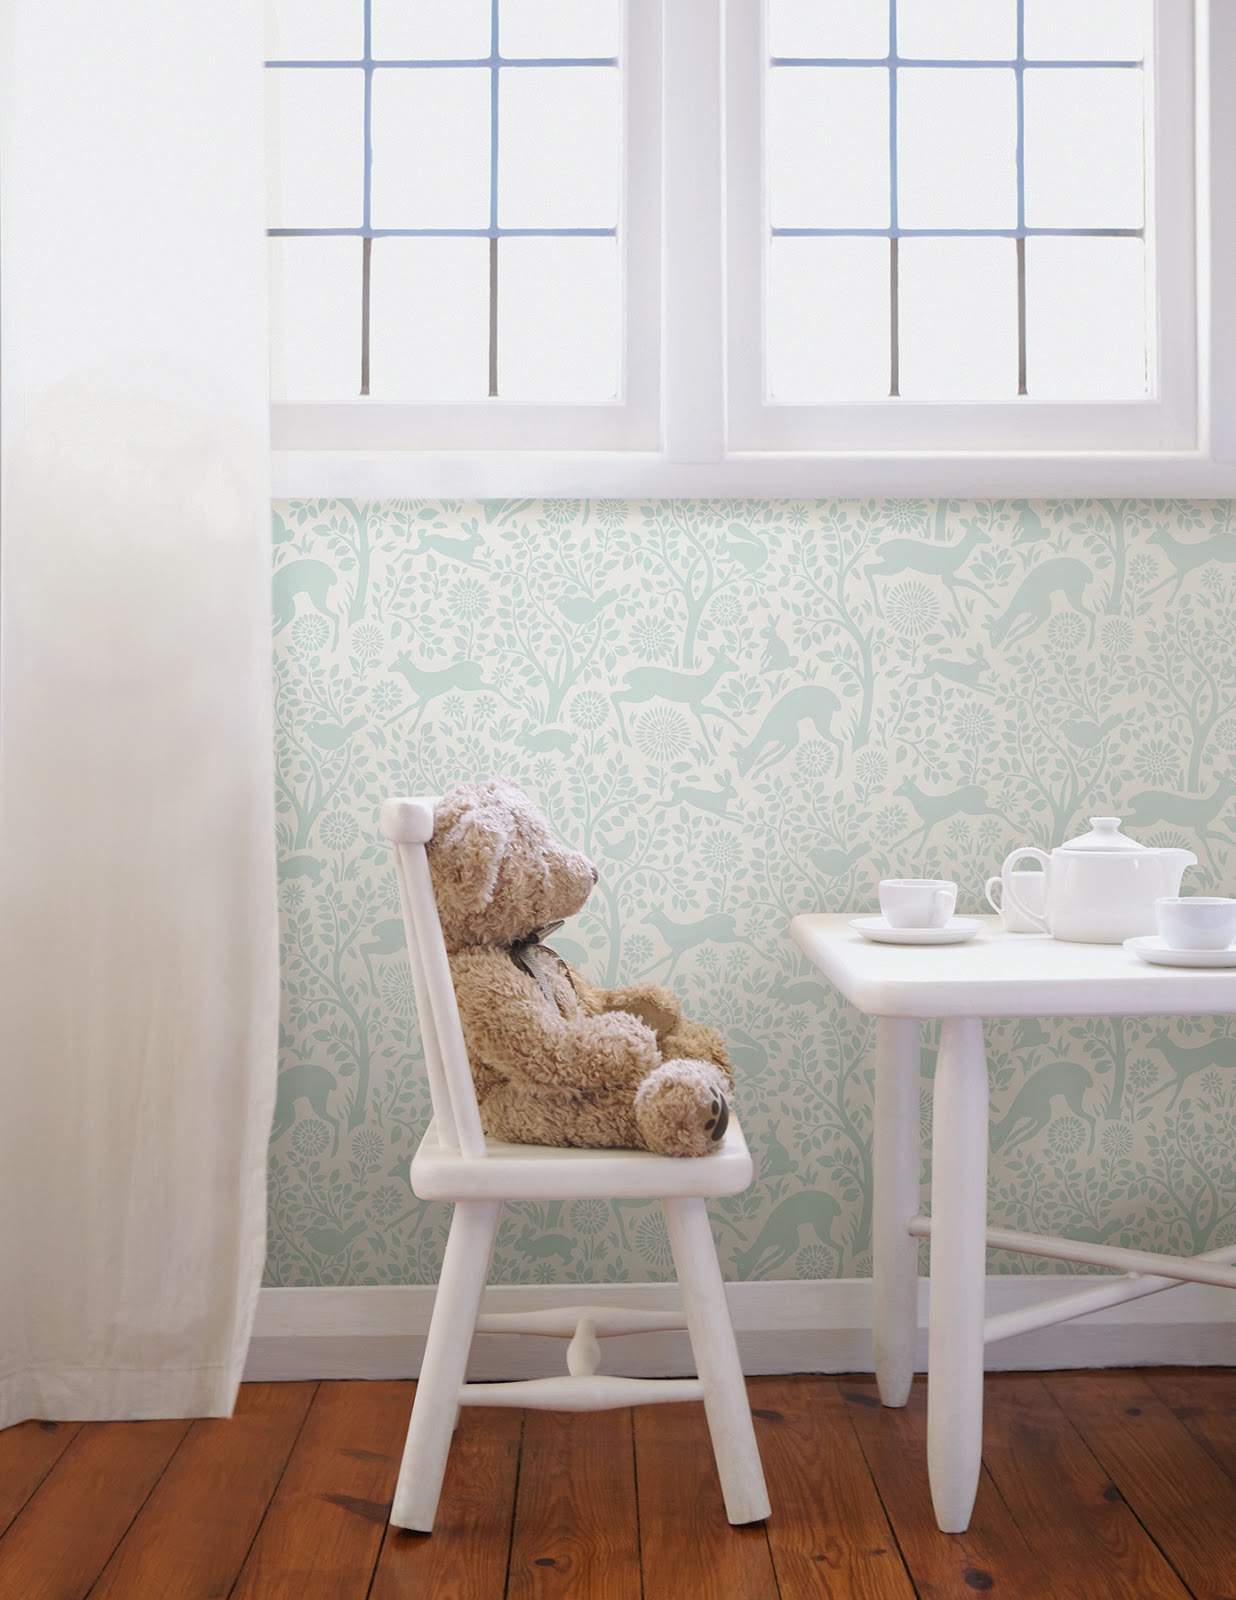 https://www.wallcoveringsforless.com/shoppingcart/prodlist1.CFM?page=_prod_detail.cfm&product_id=44850&startrow=1&search=1234&pagereturn=_search.cfm